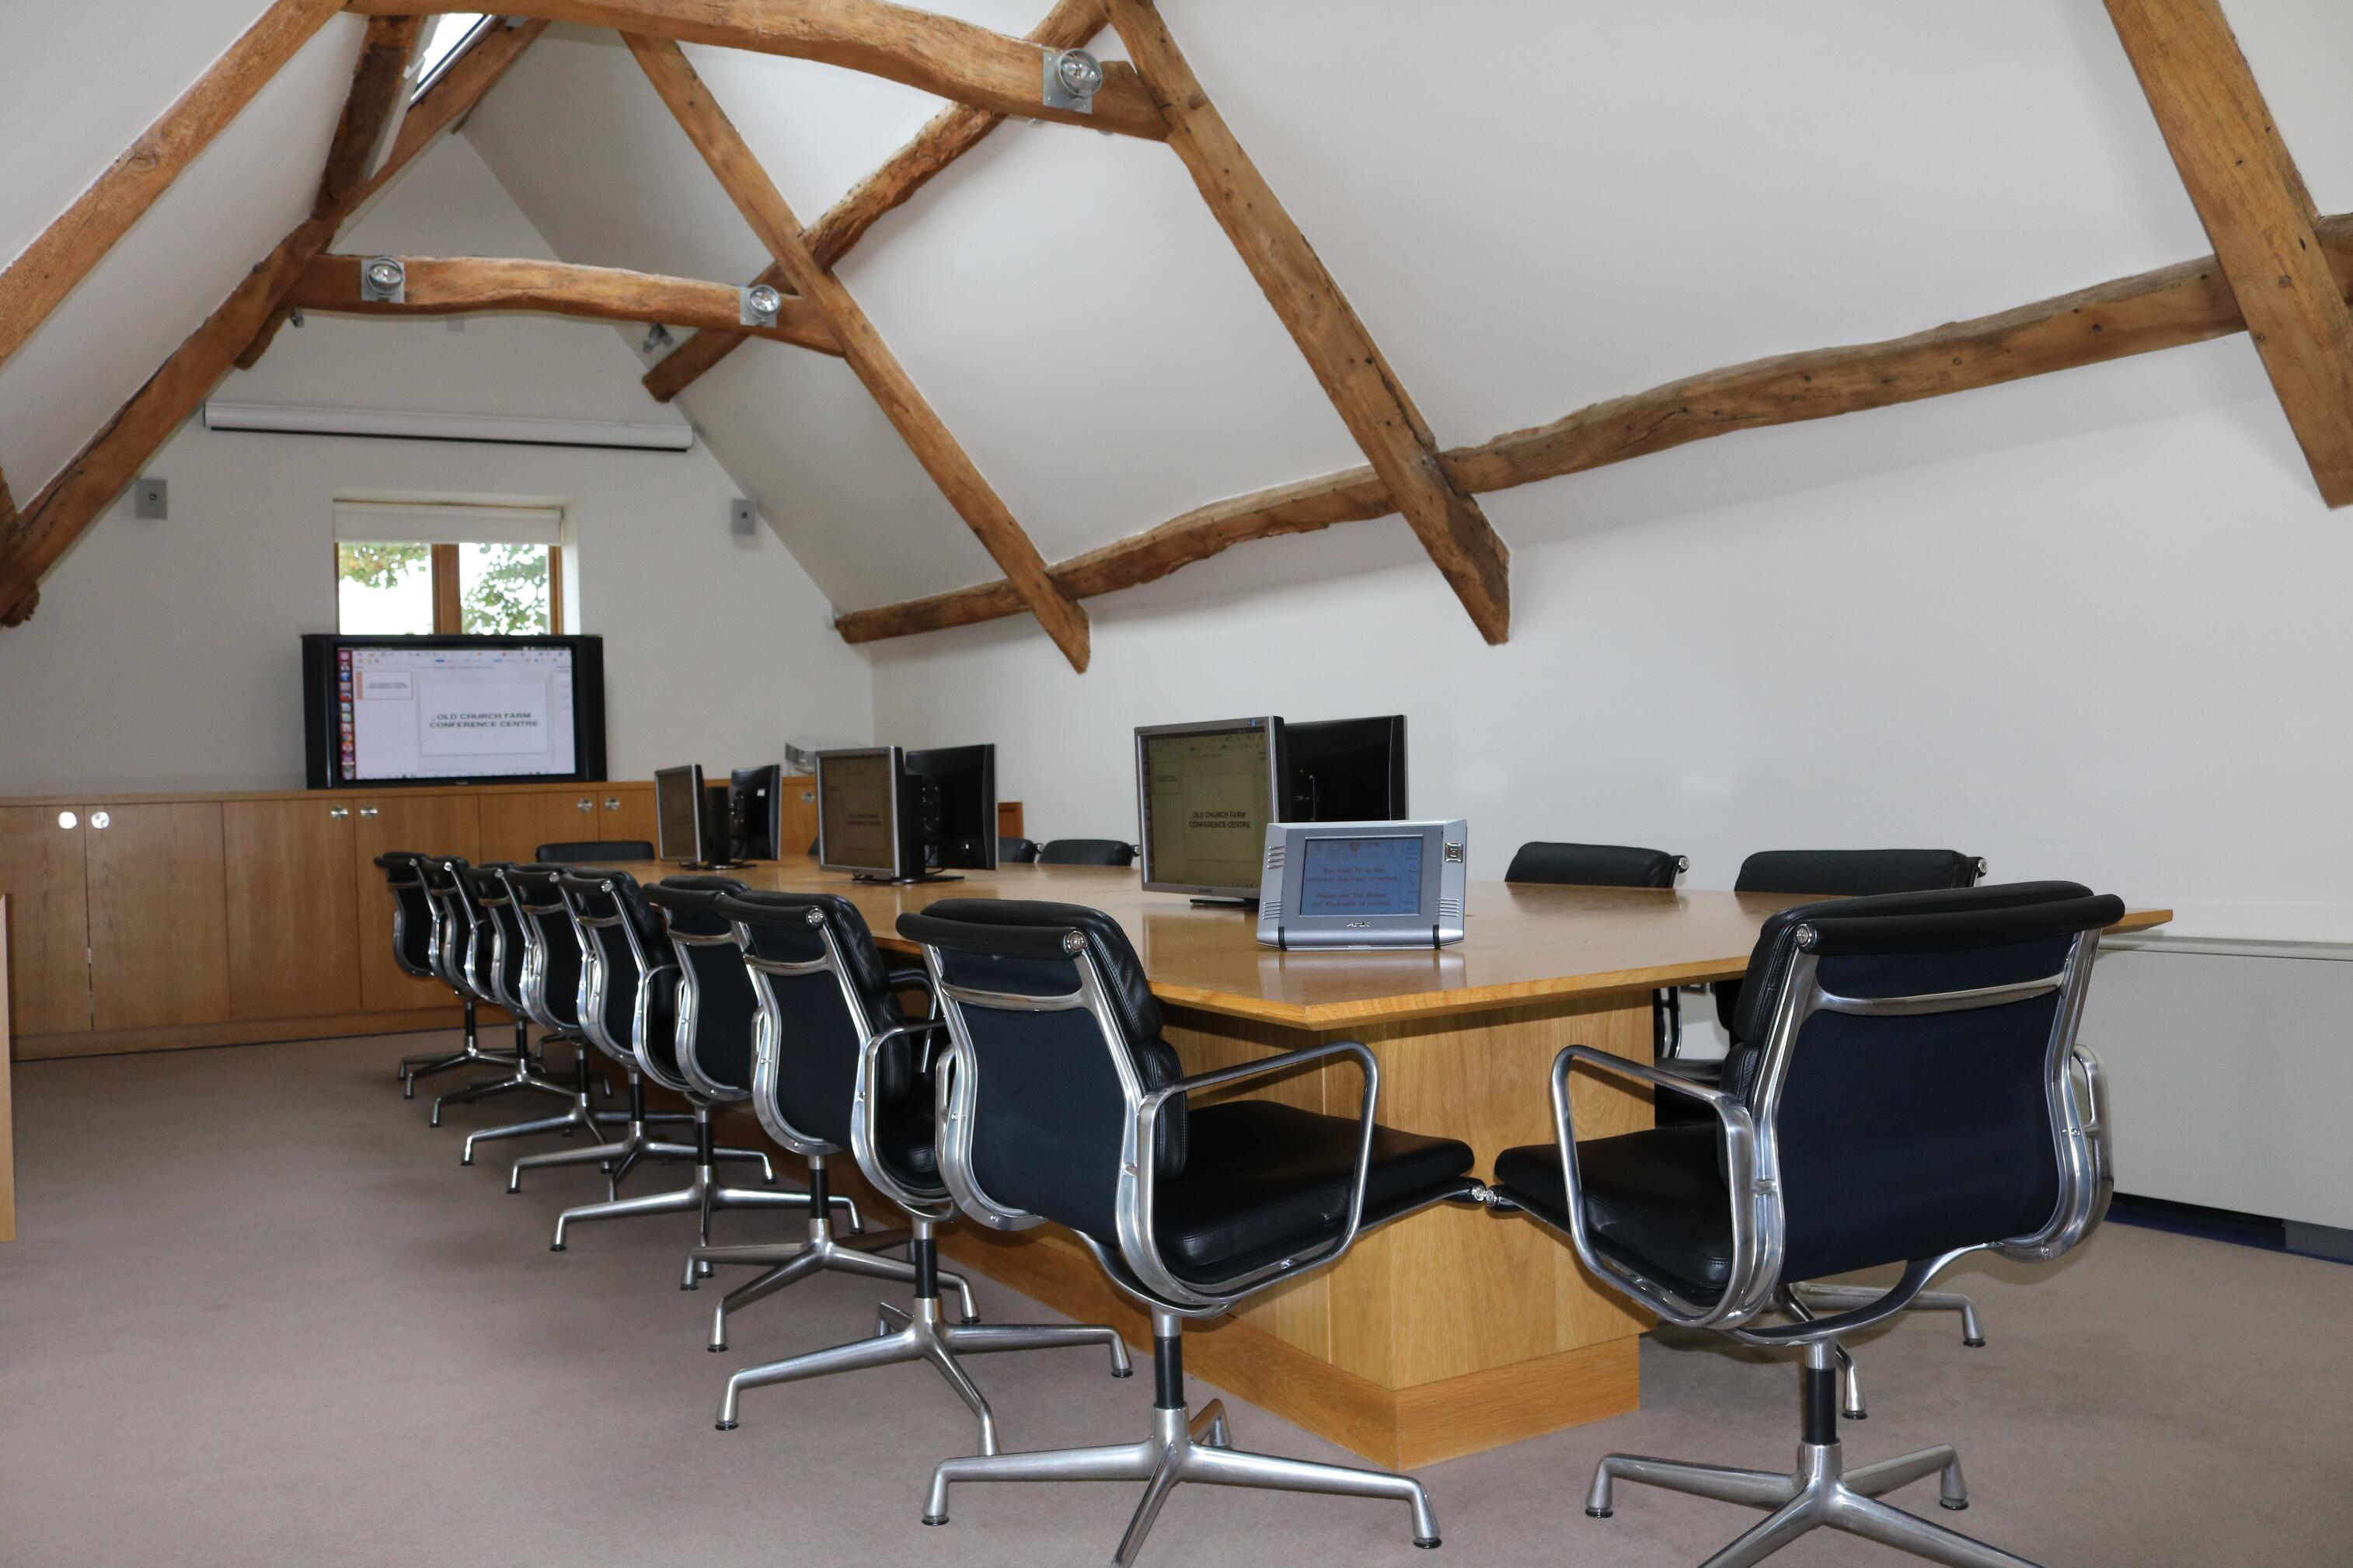 The boardroom at Old Church Farm